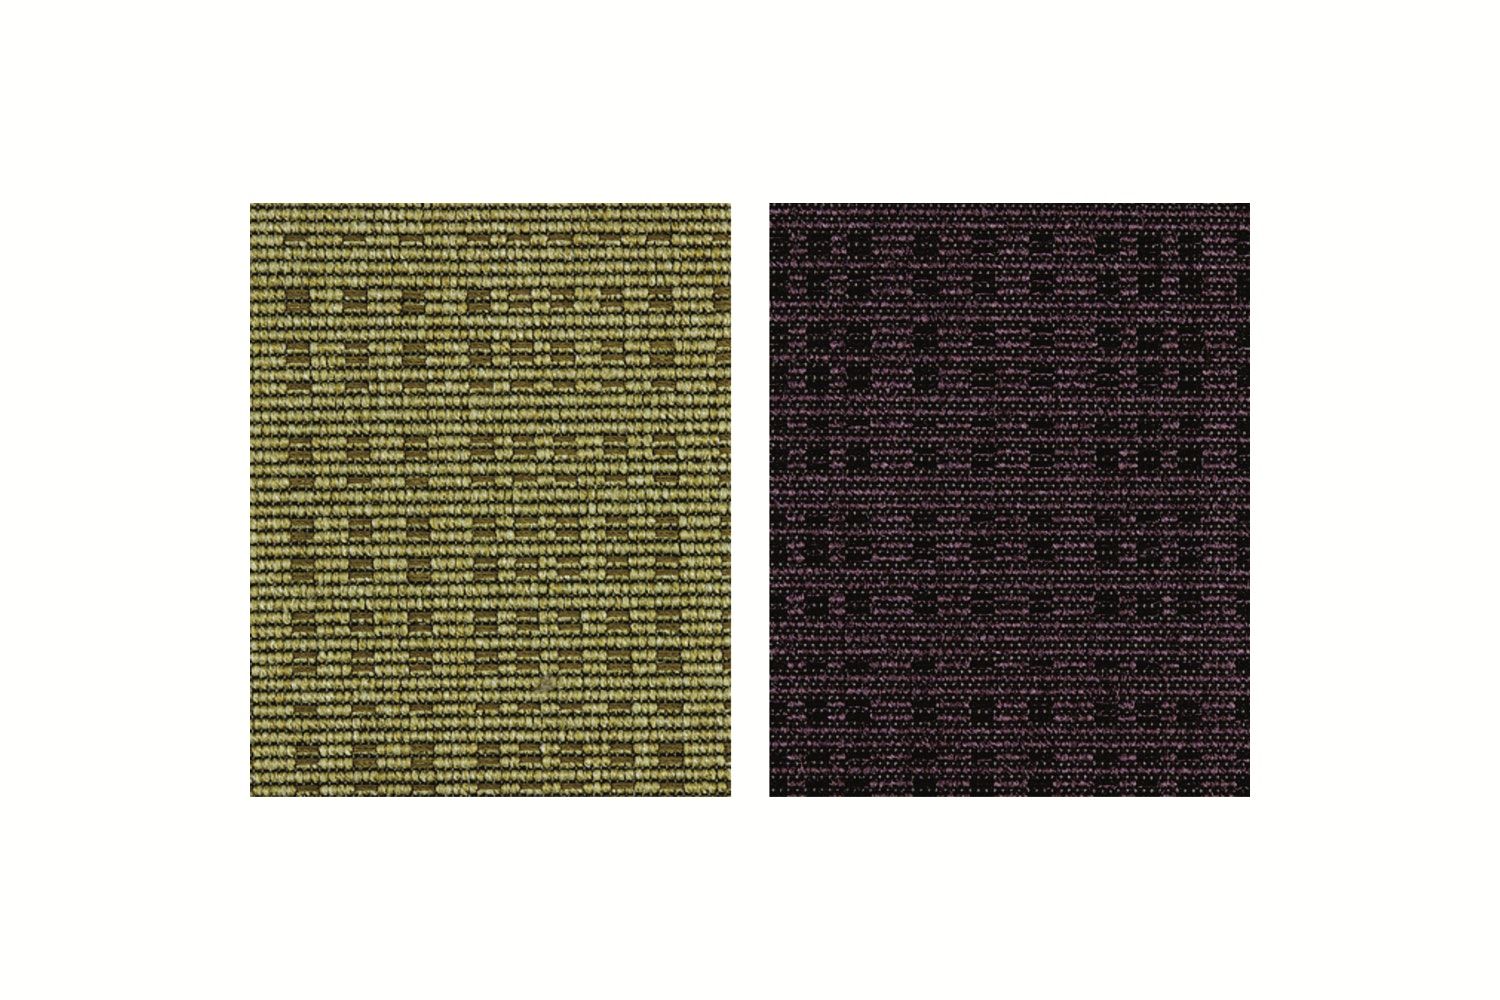 Jack Woven Wall-to-Wall Carpet by Anna Schou for Kasthall